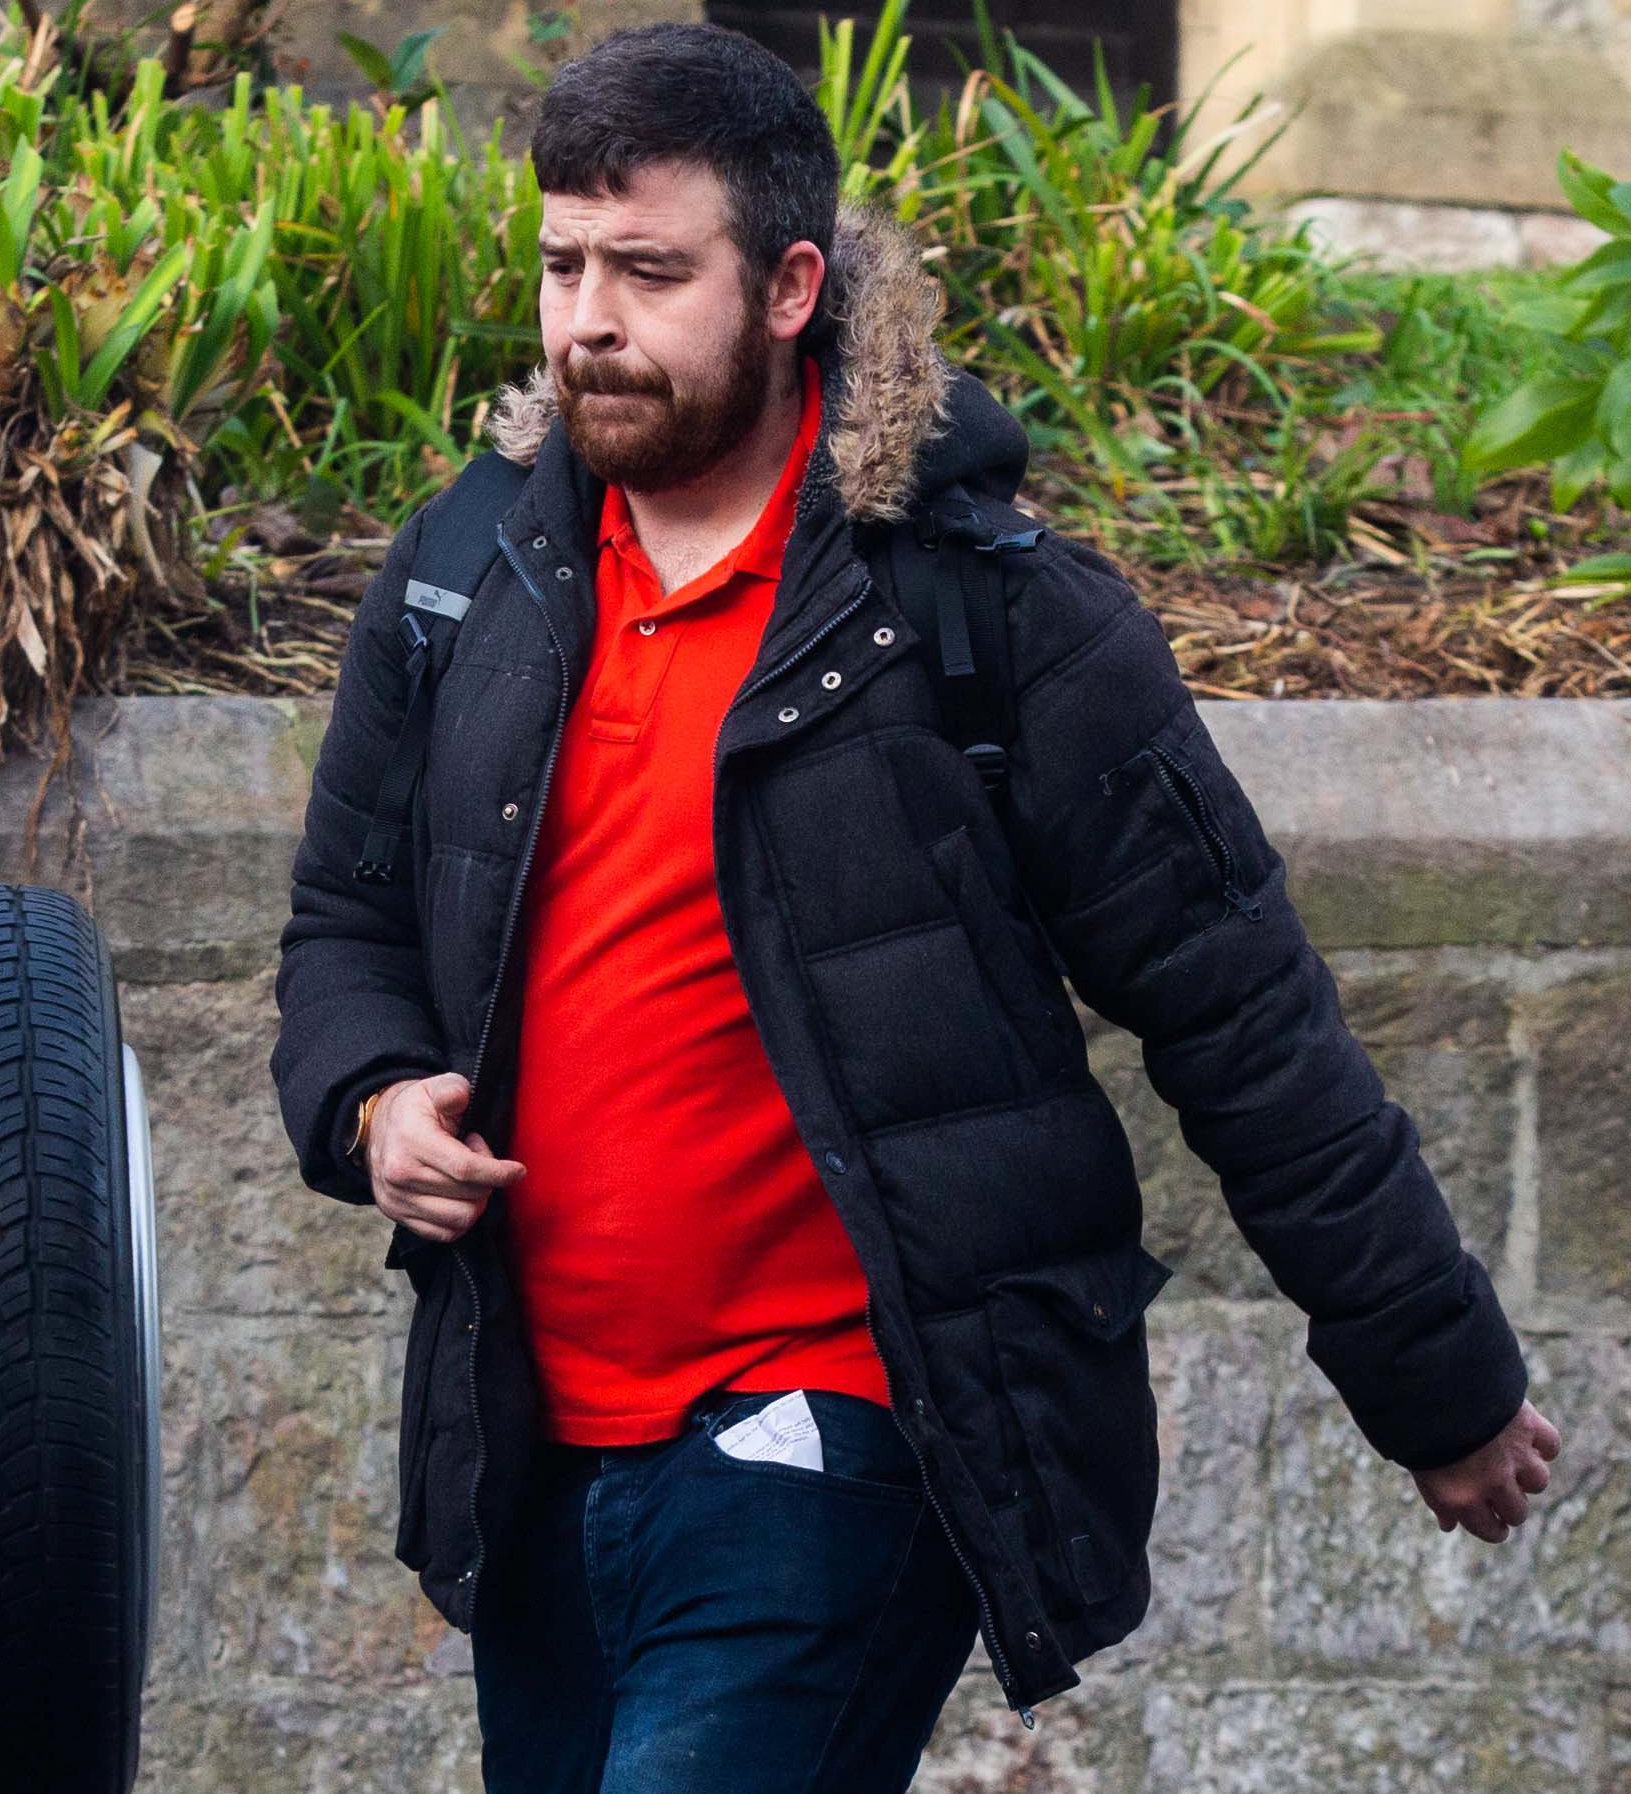 Paul Elcombe at Plymouth Magistrates Court on Thursday. (SWNS)